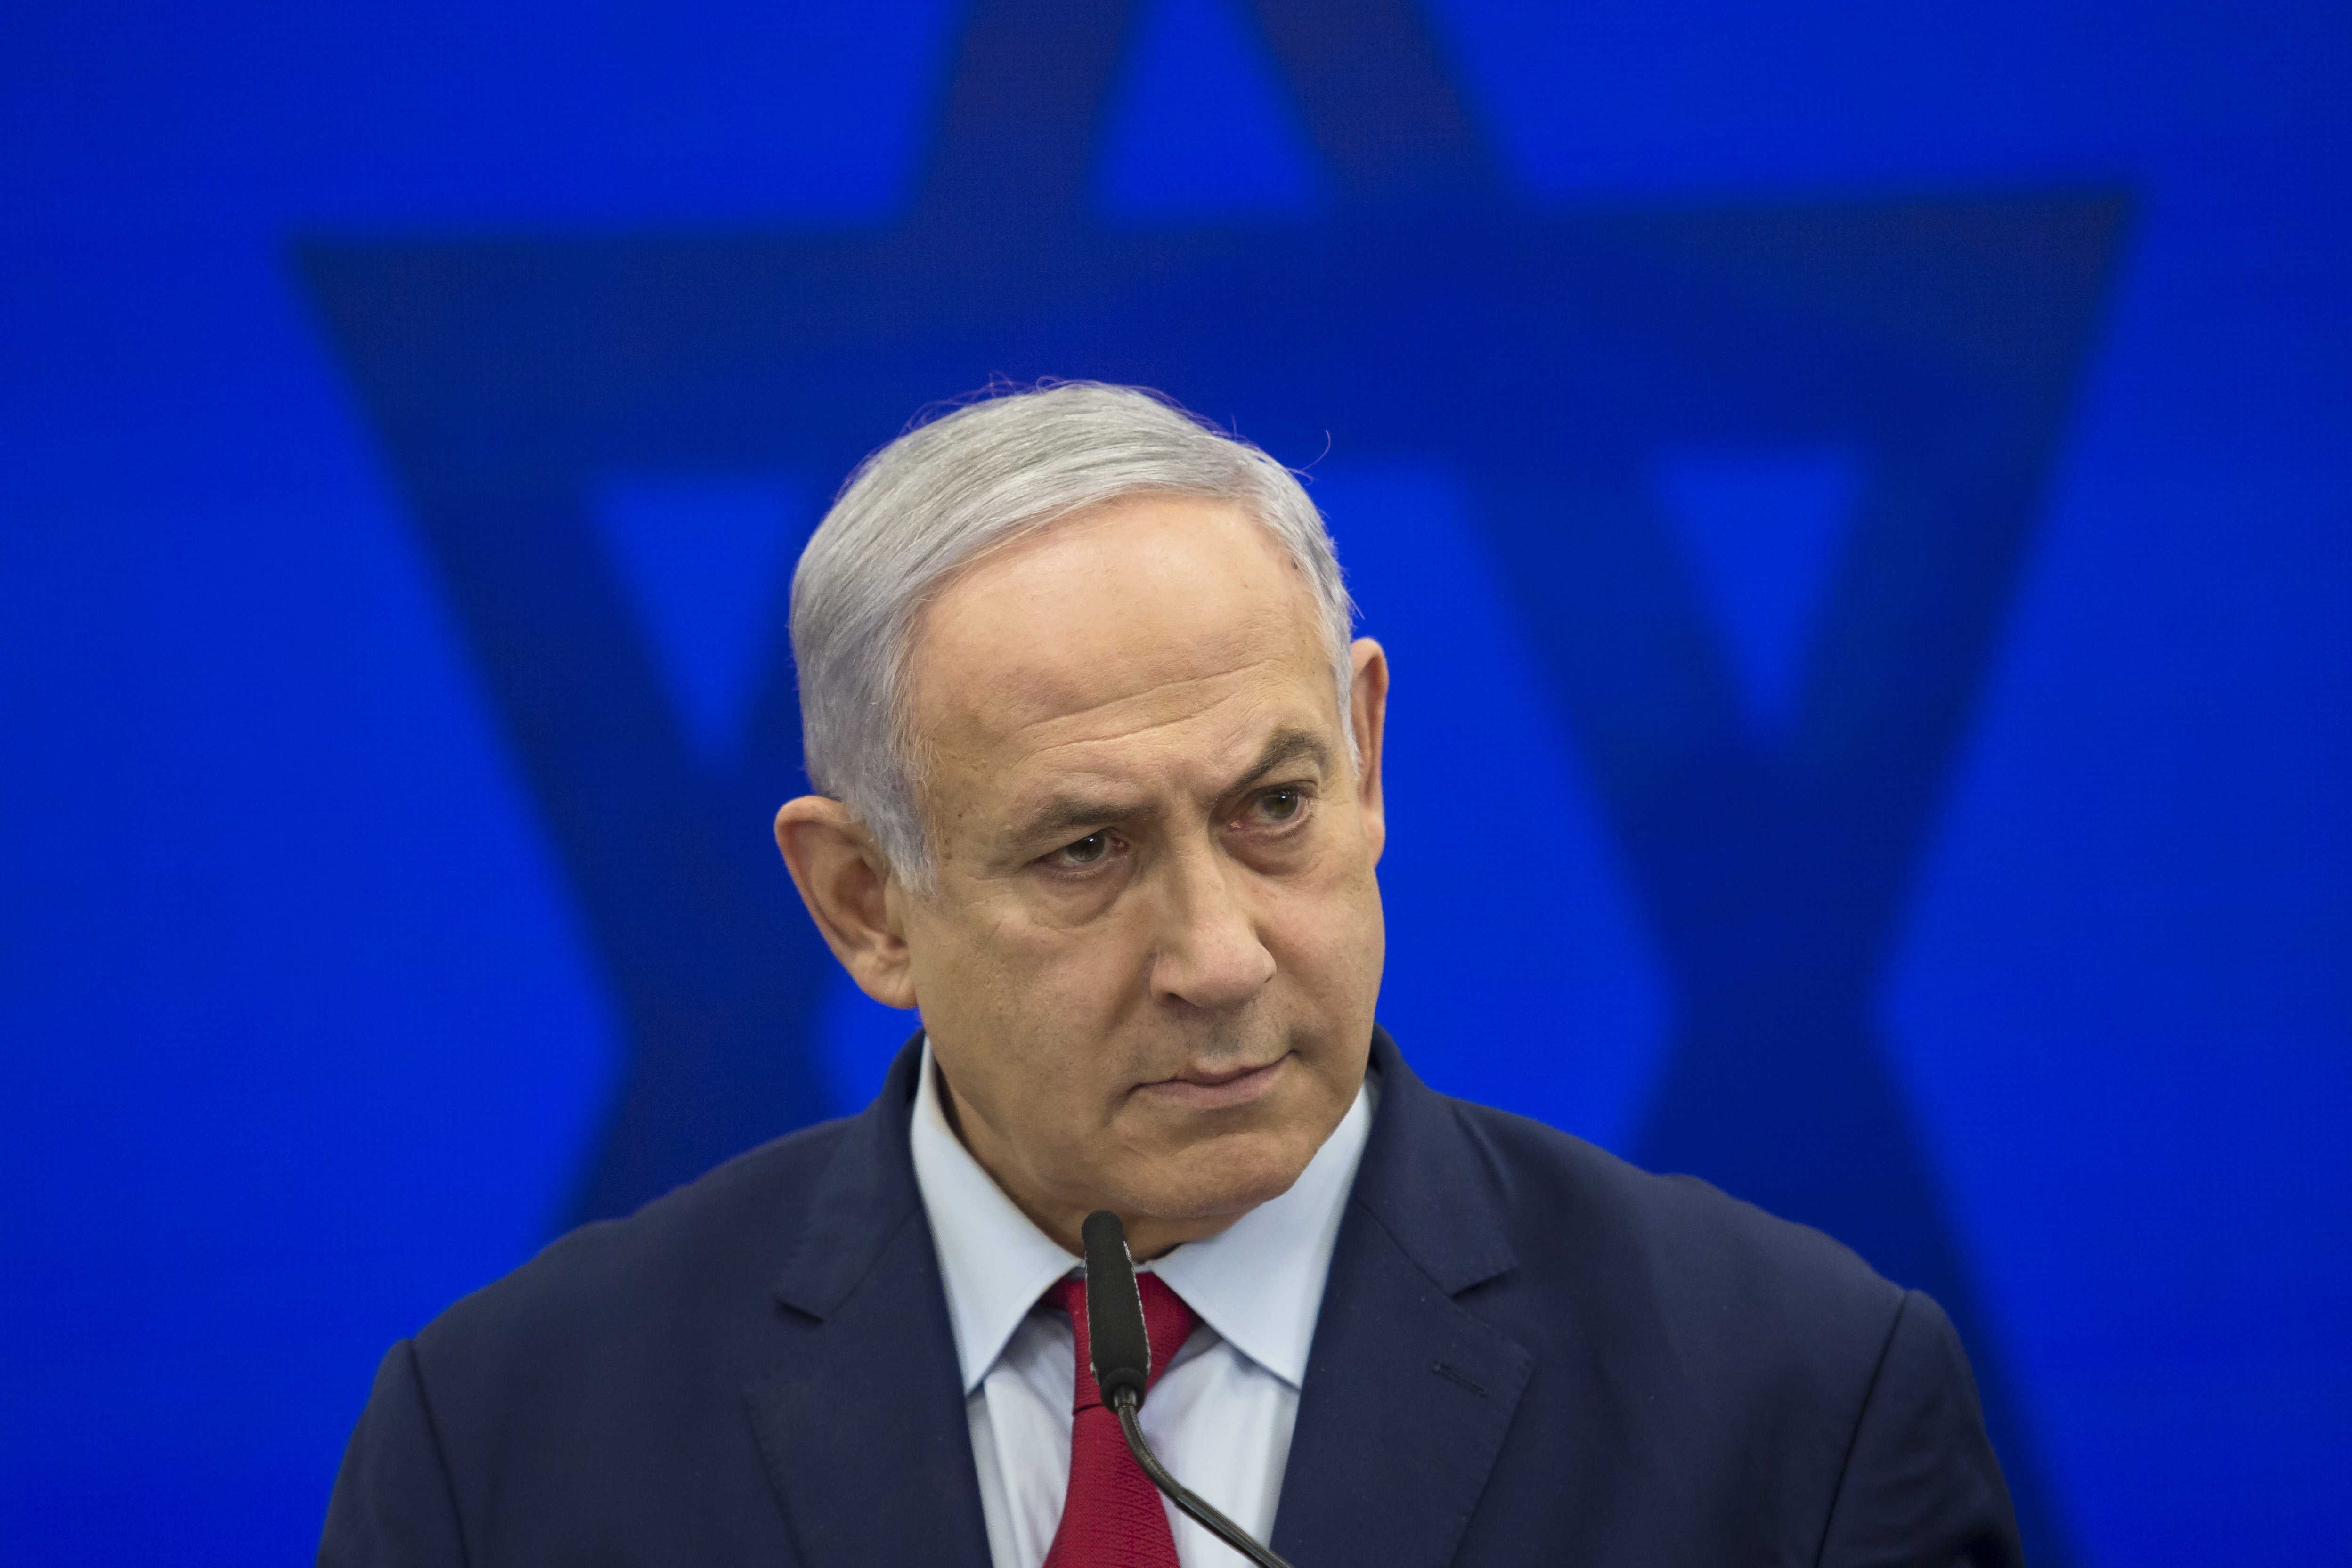 Netanyahu Pledges To Annex Jordan Valley In Occupied West Bank If Re-Elected